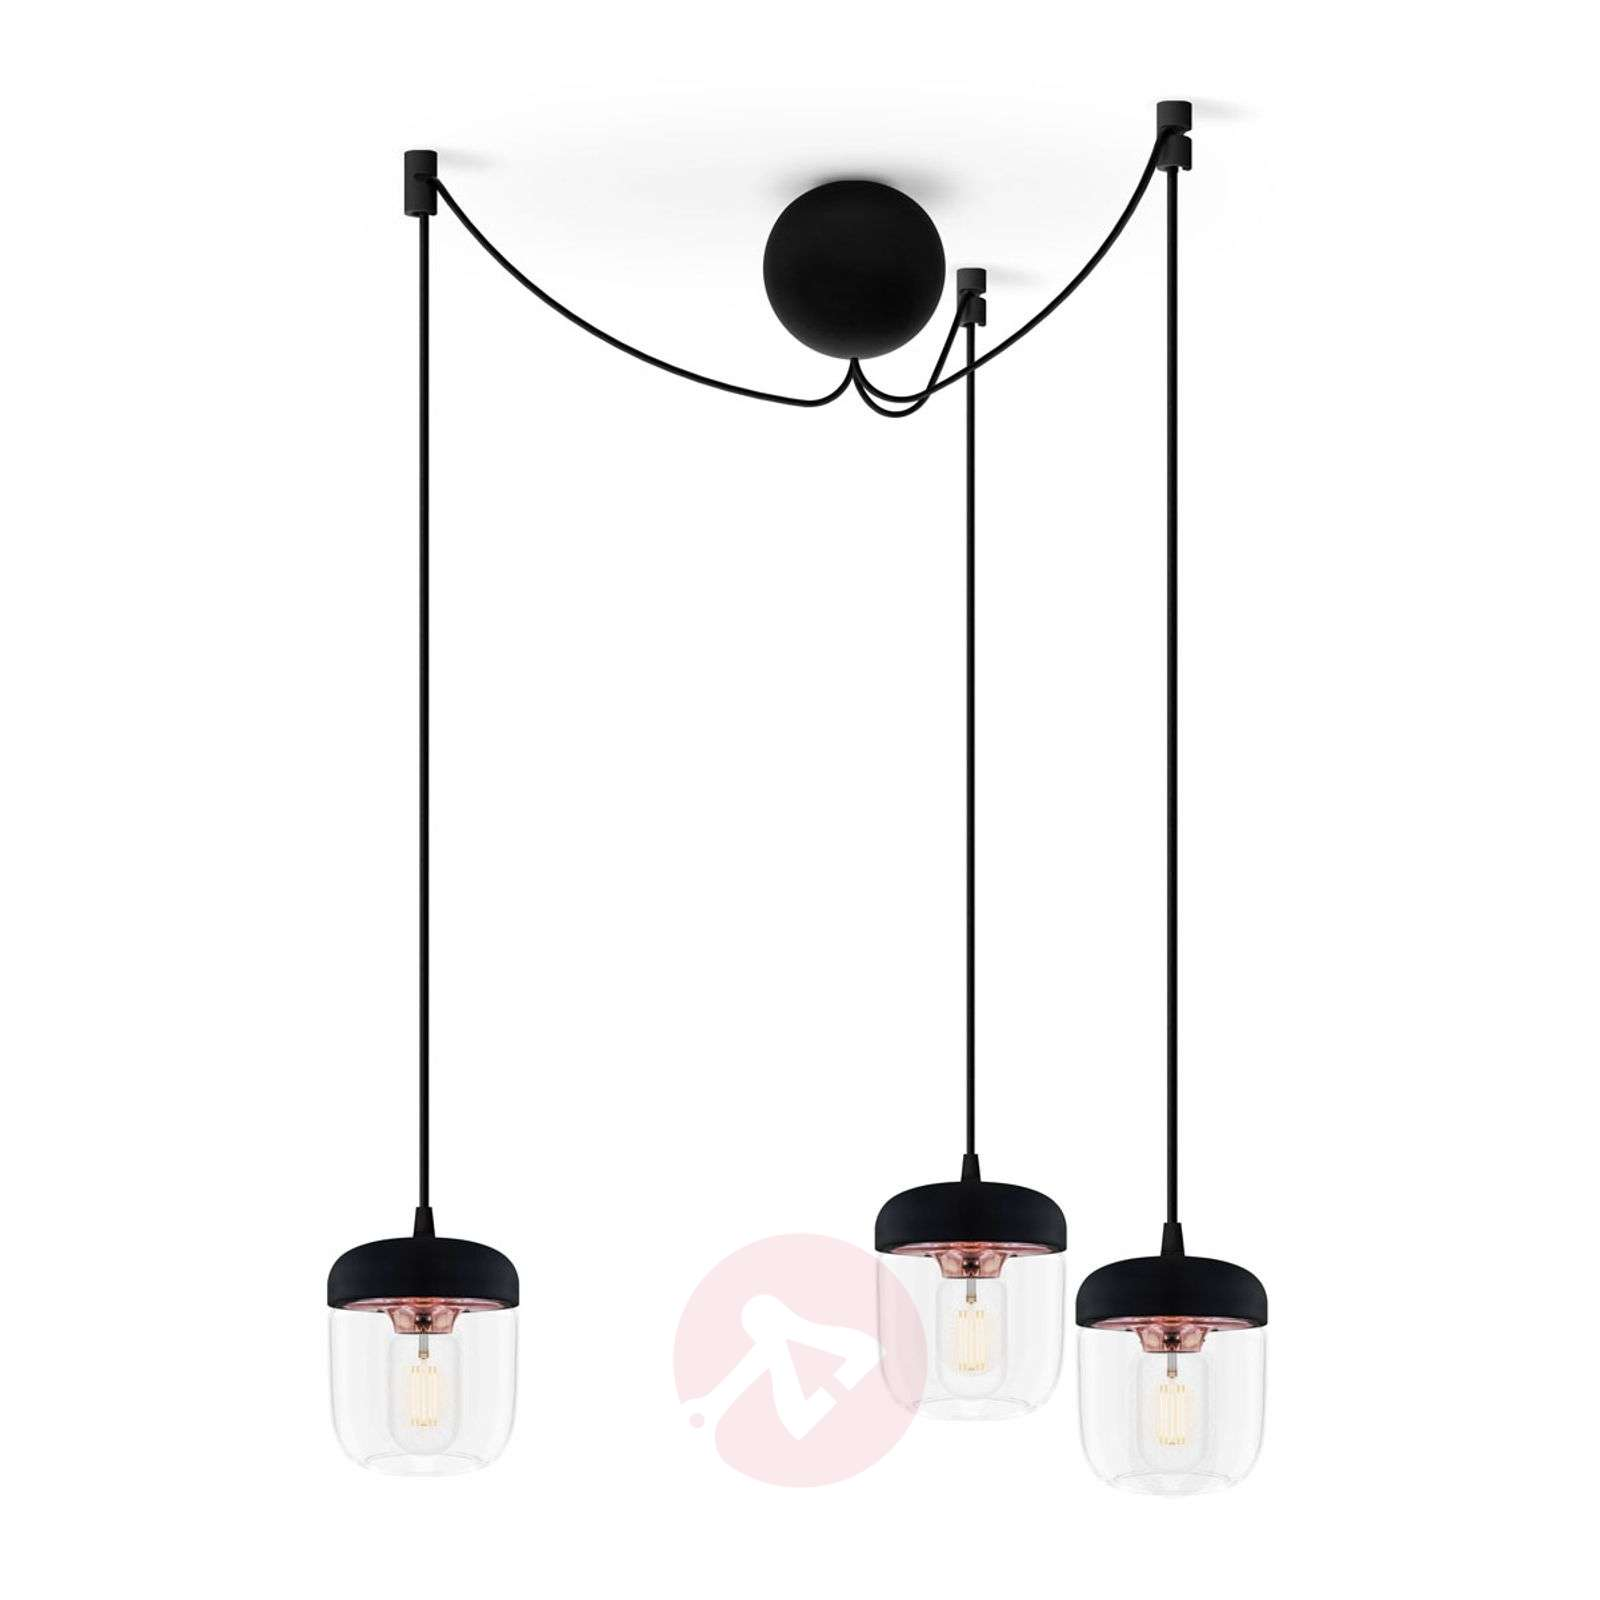 UMAGE Acorn pendant lamp three-bulb, black/copper-9521098-01